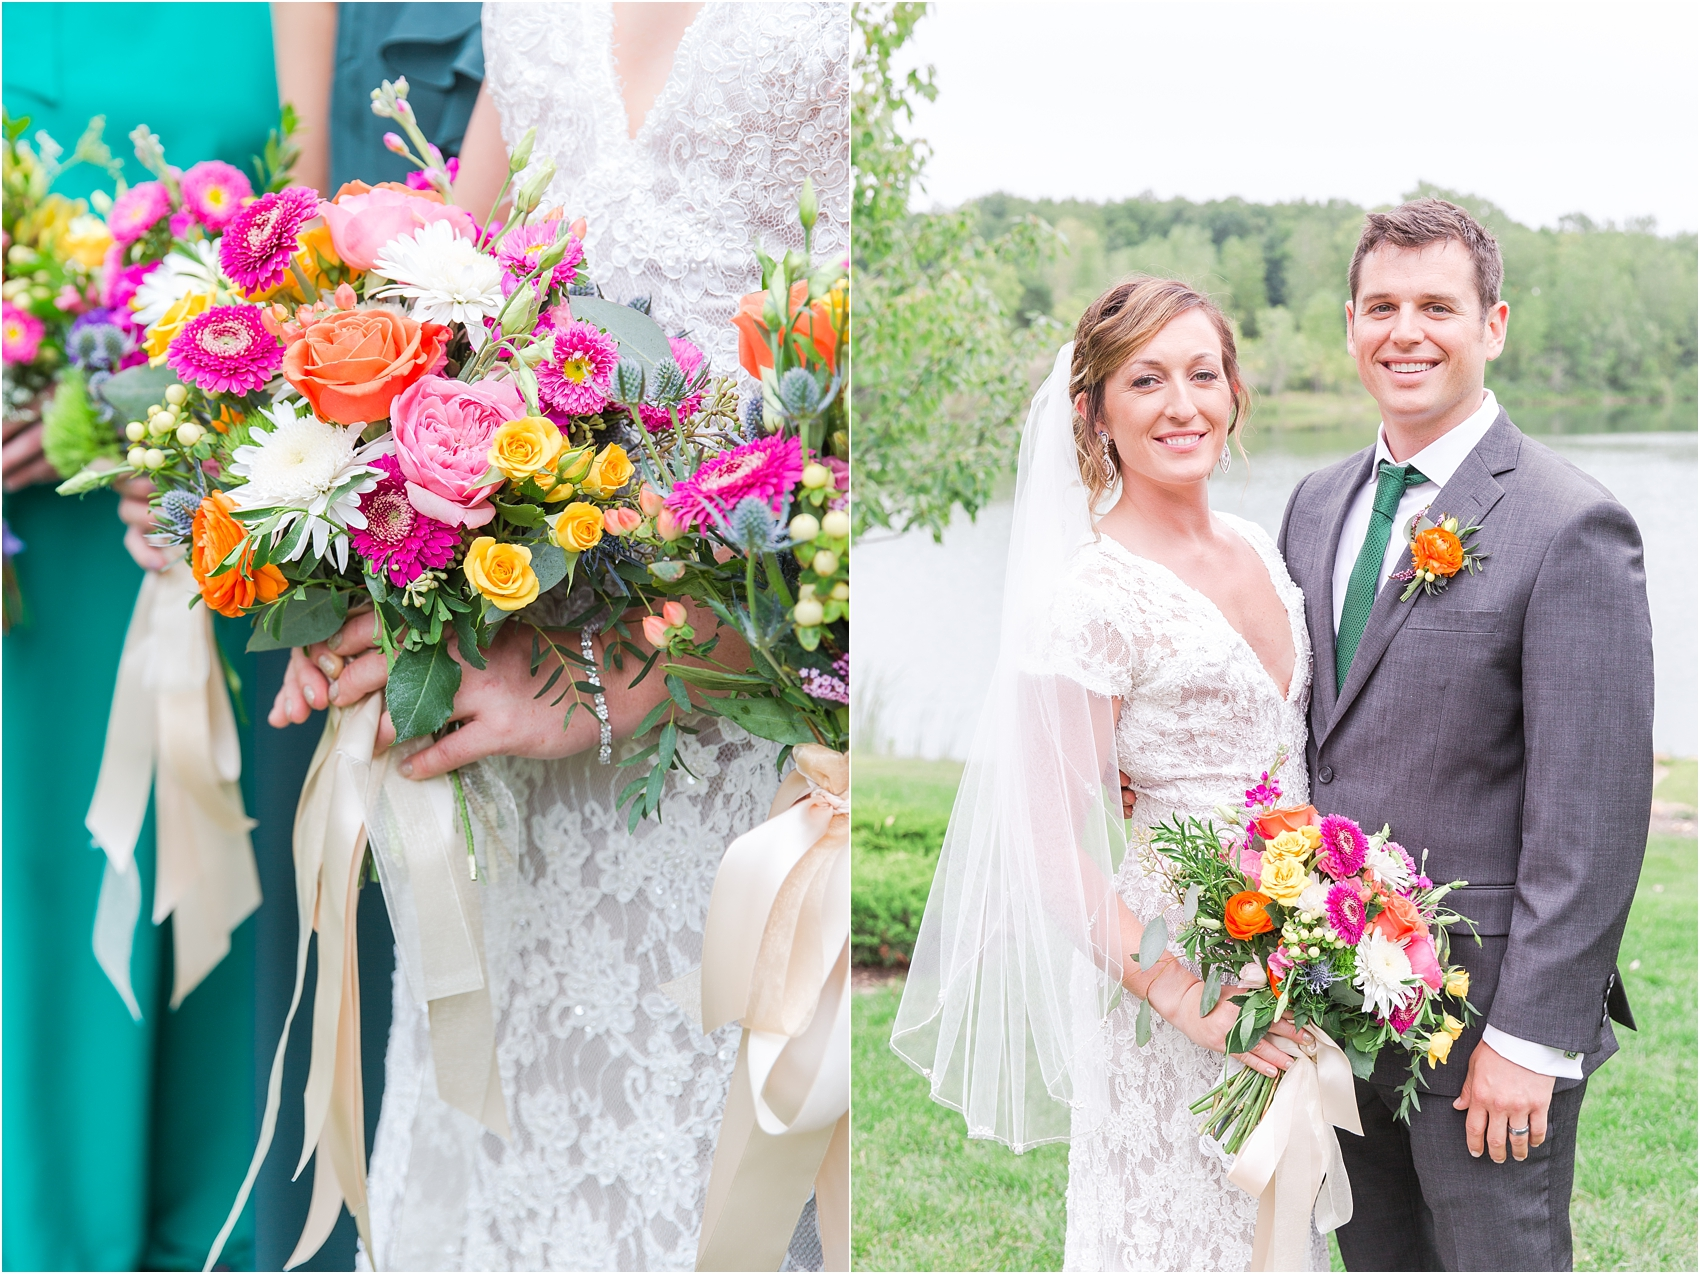 romantic-intimate-backyard-wedding-photos-at-private-estate-in-ann-arbor-mi-by-courtney-carolyn-photography_0045.jpg